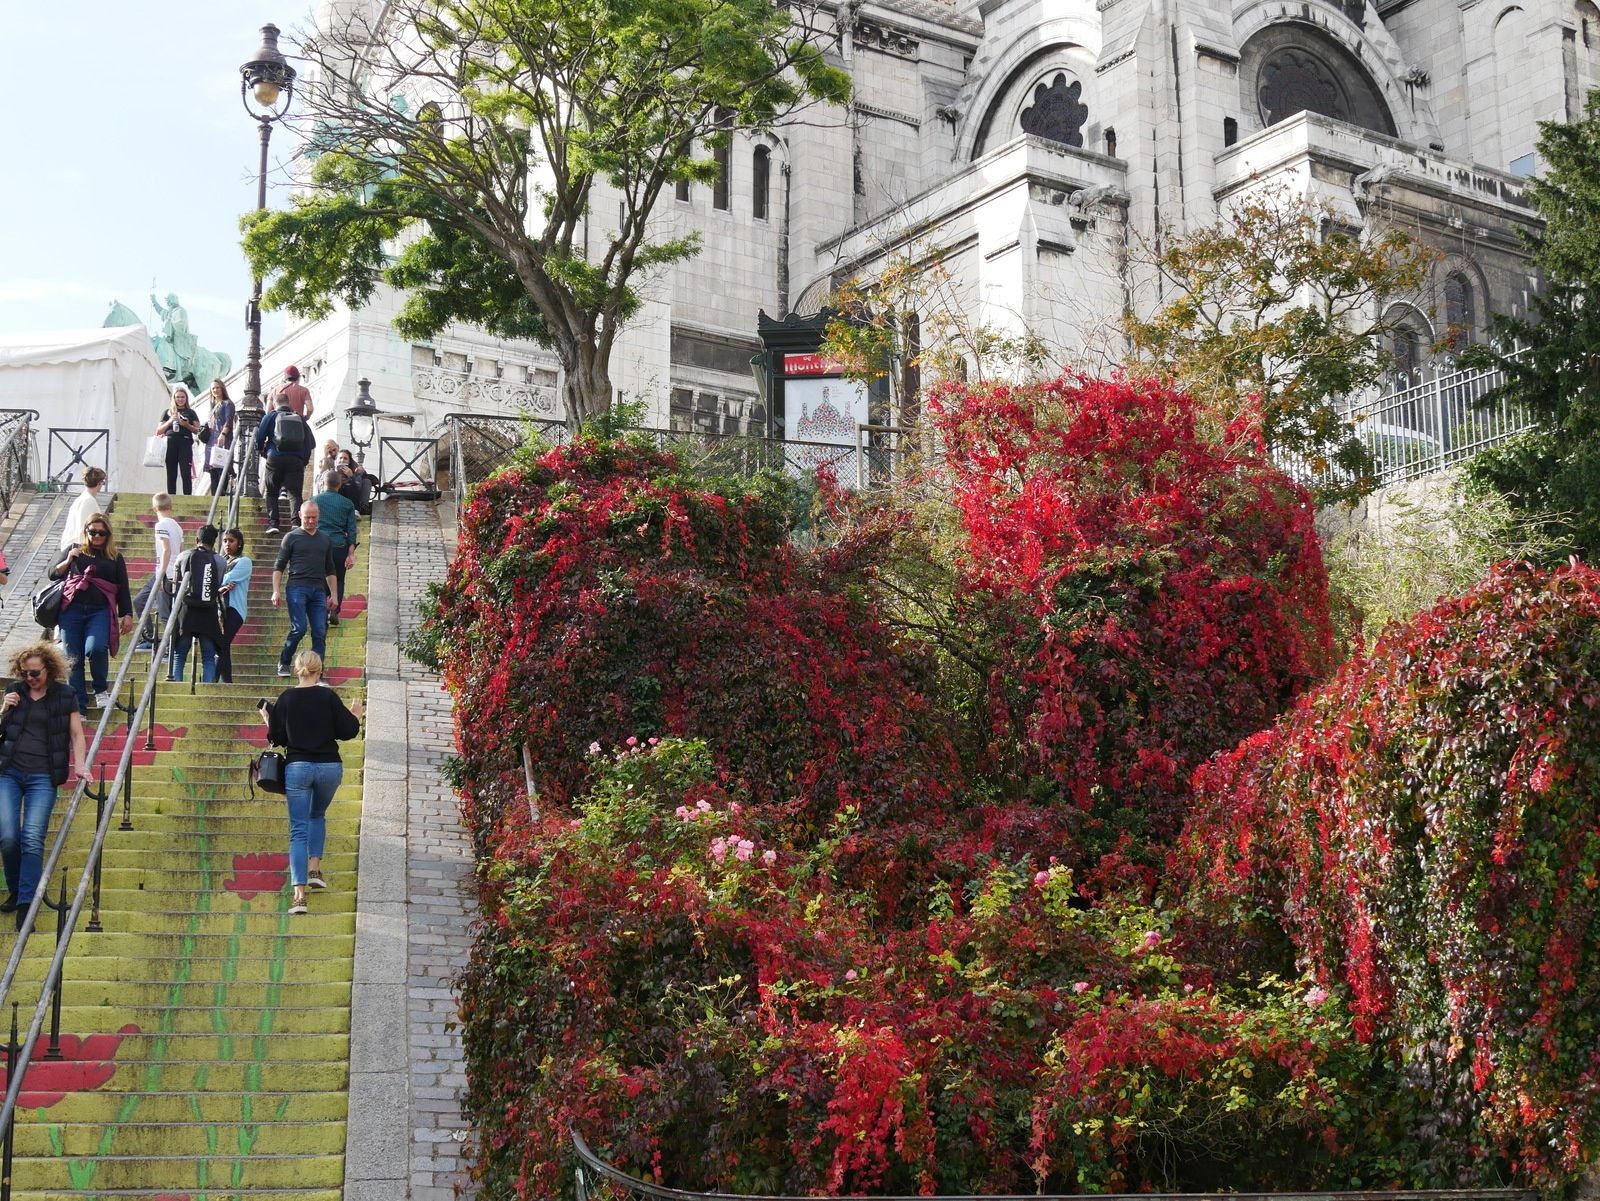 Album photos de Montmartre en octobre 2019.